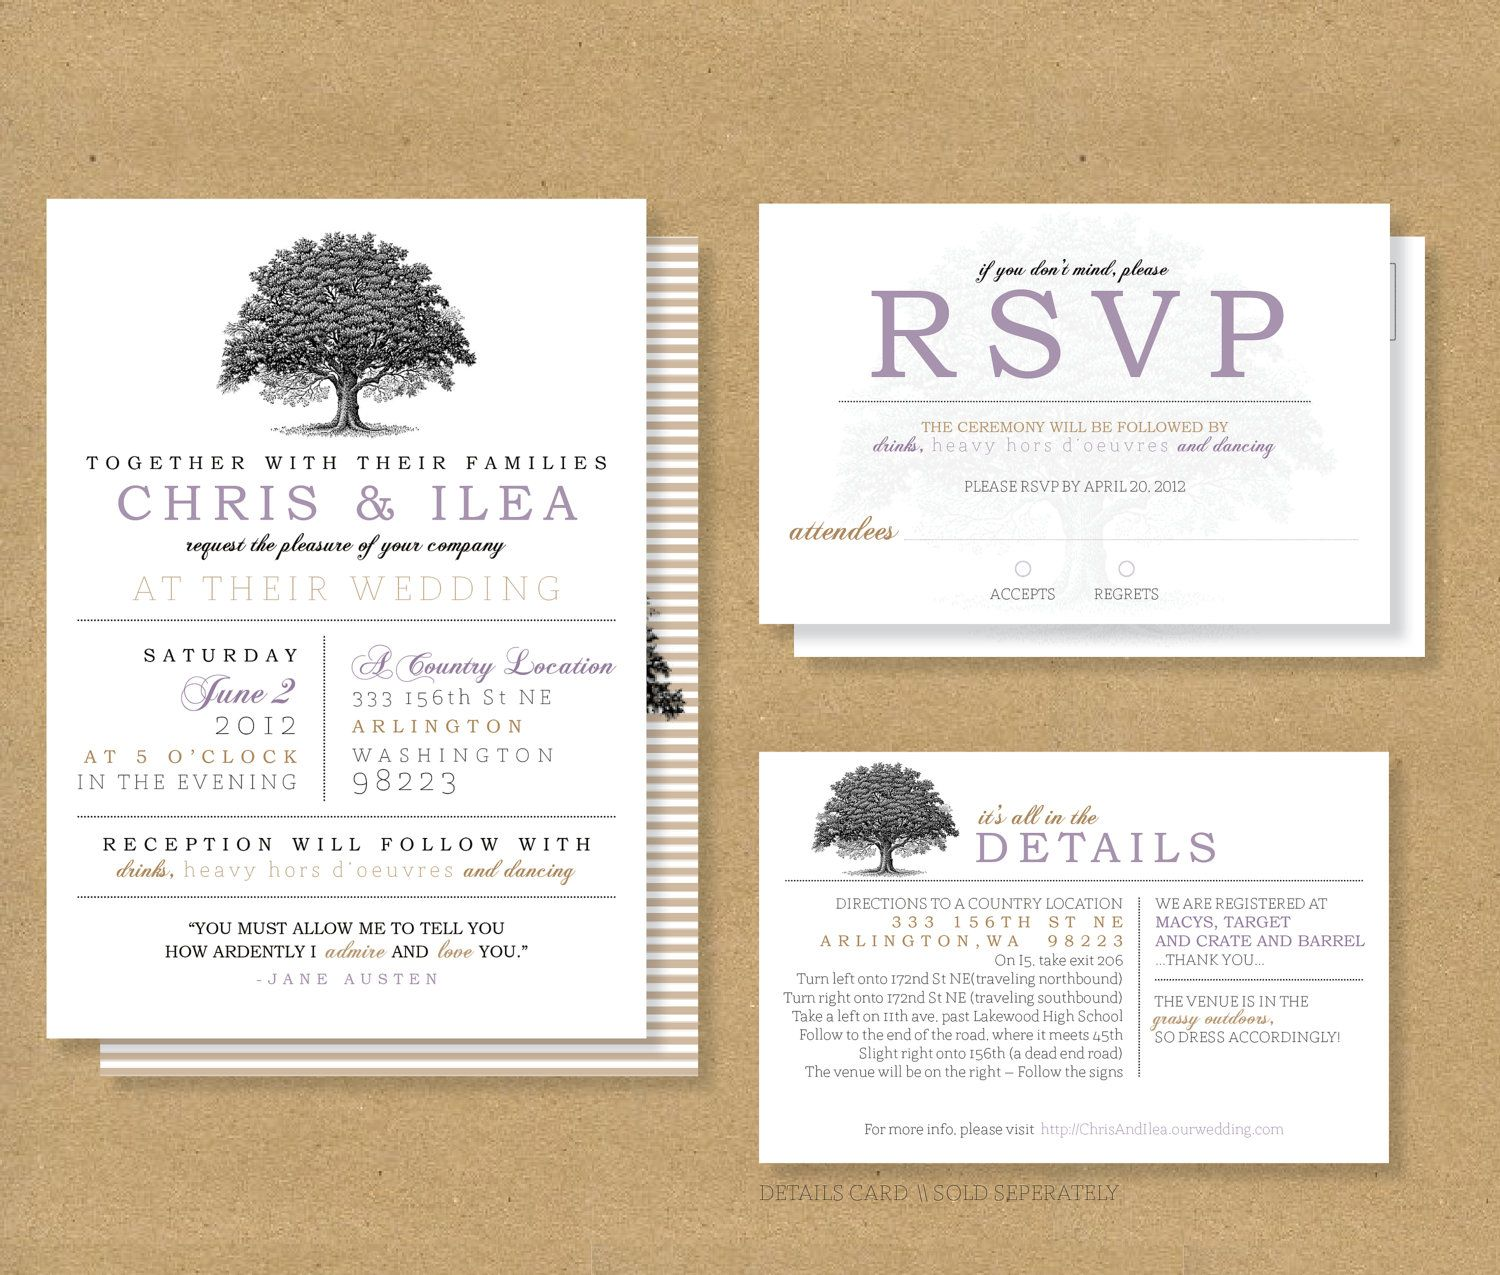 wedding invitationwedding rsvp wording samples tips With wording for wedding invitations with rsvp